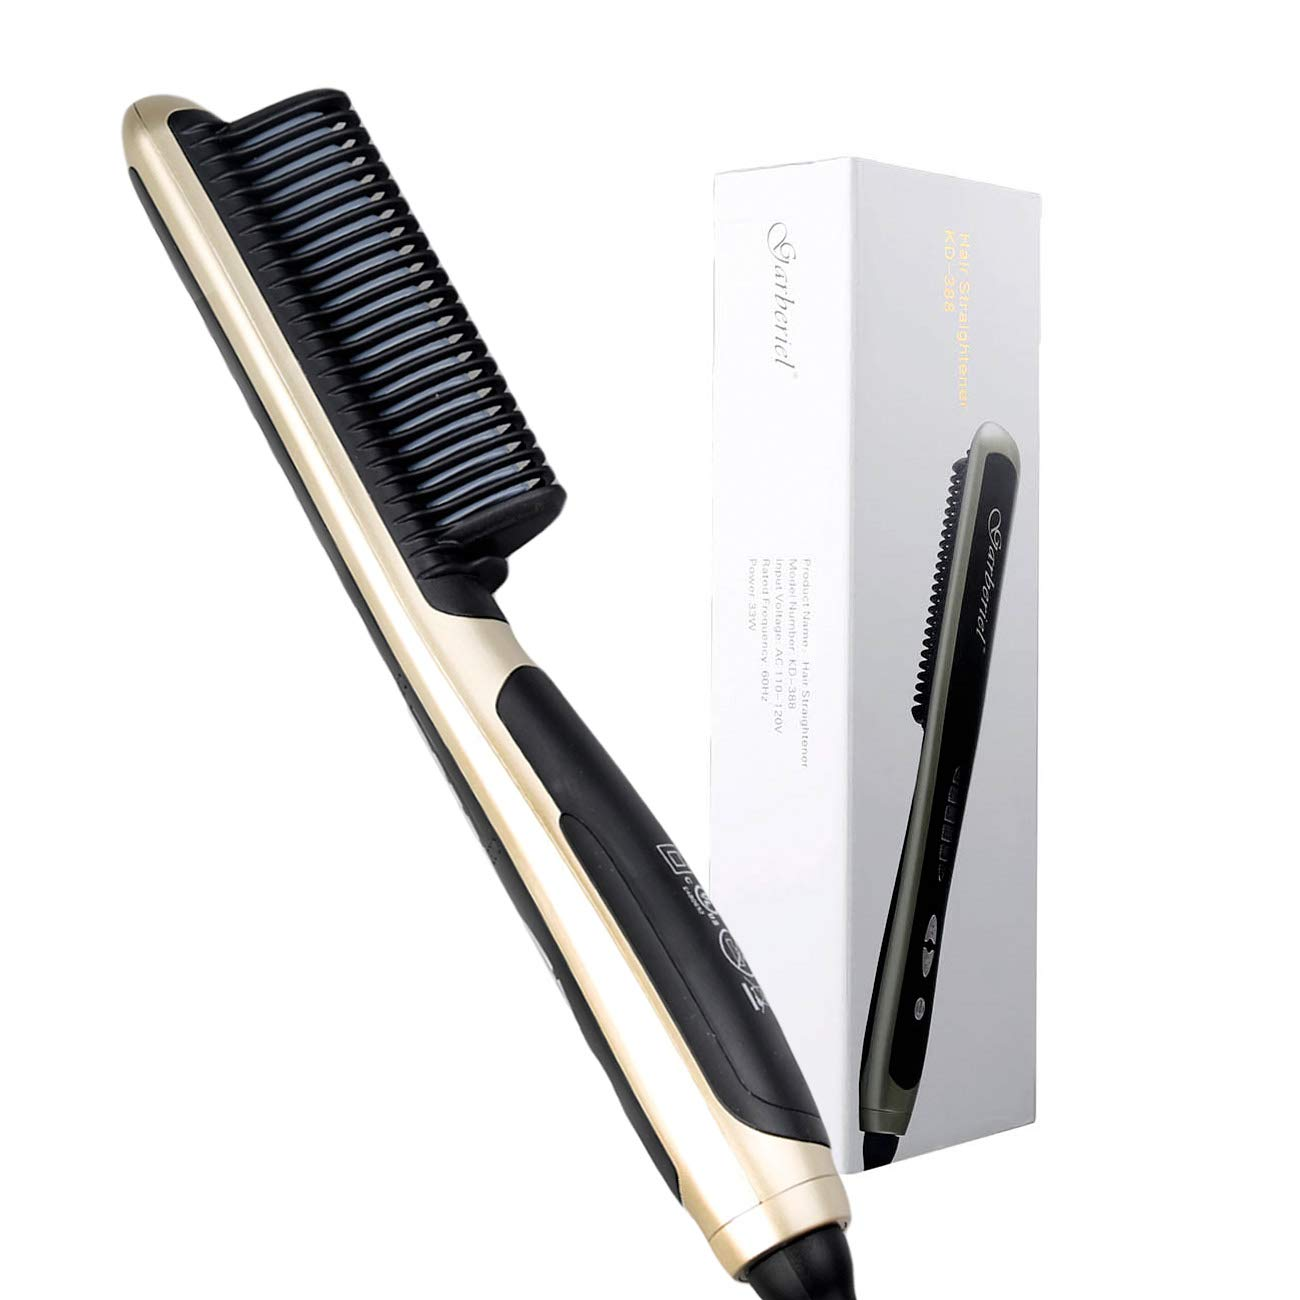 HeCloud Safety Ceramic Hair Straightener Brush Hair straightener Comb 110V 33W